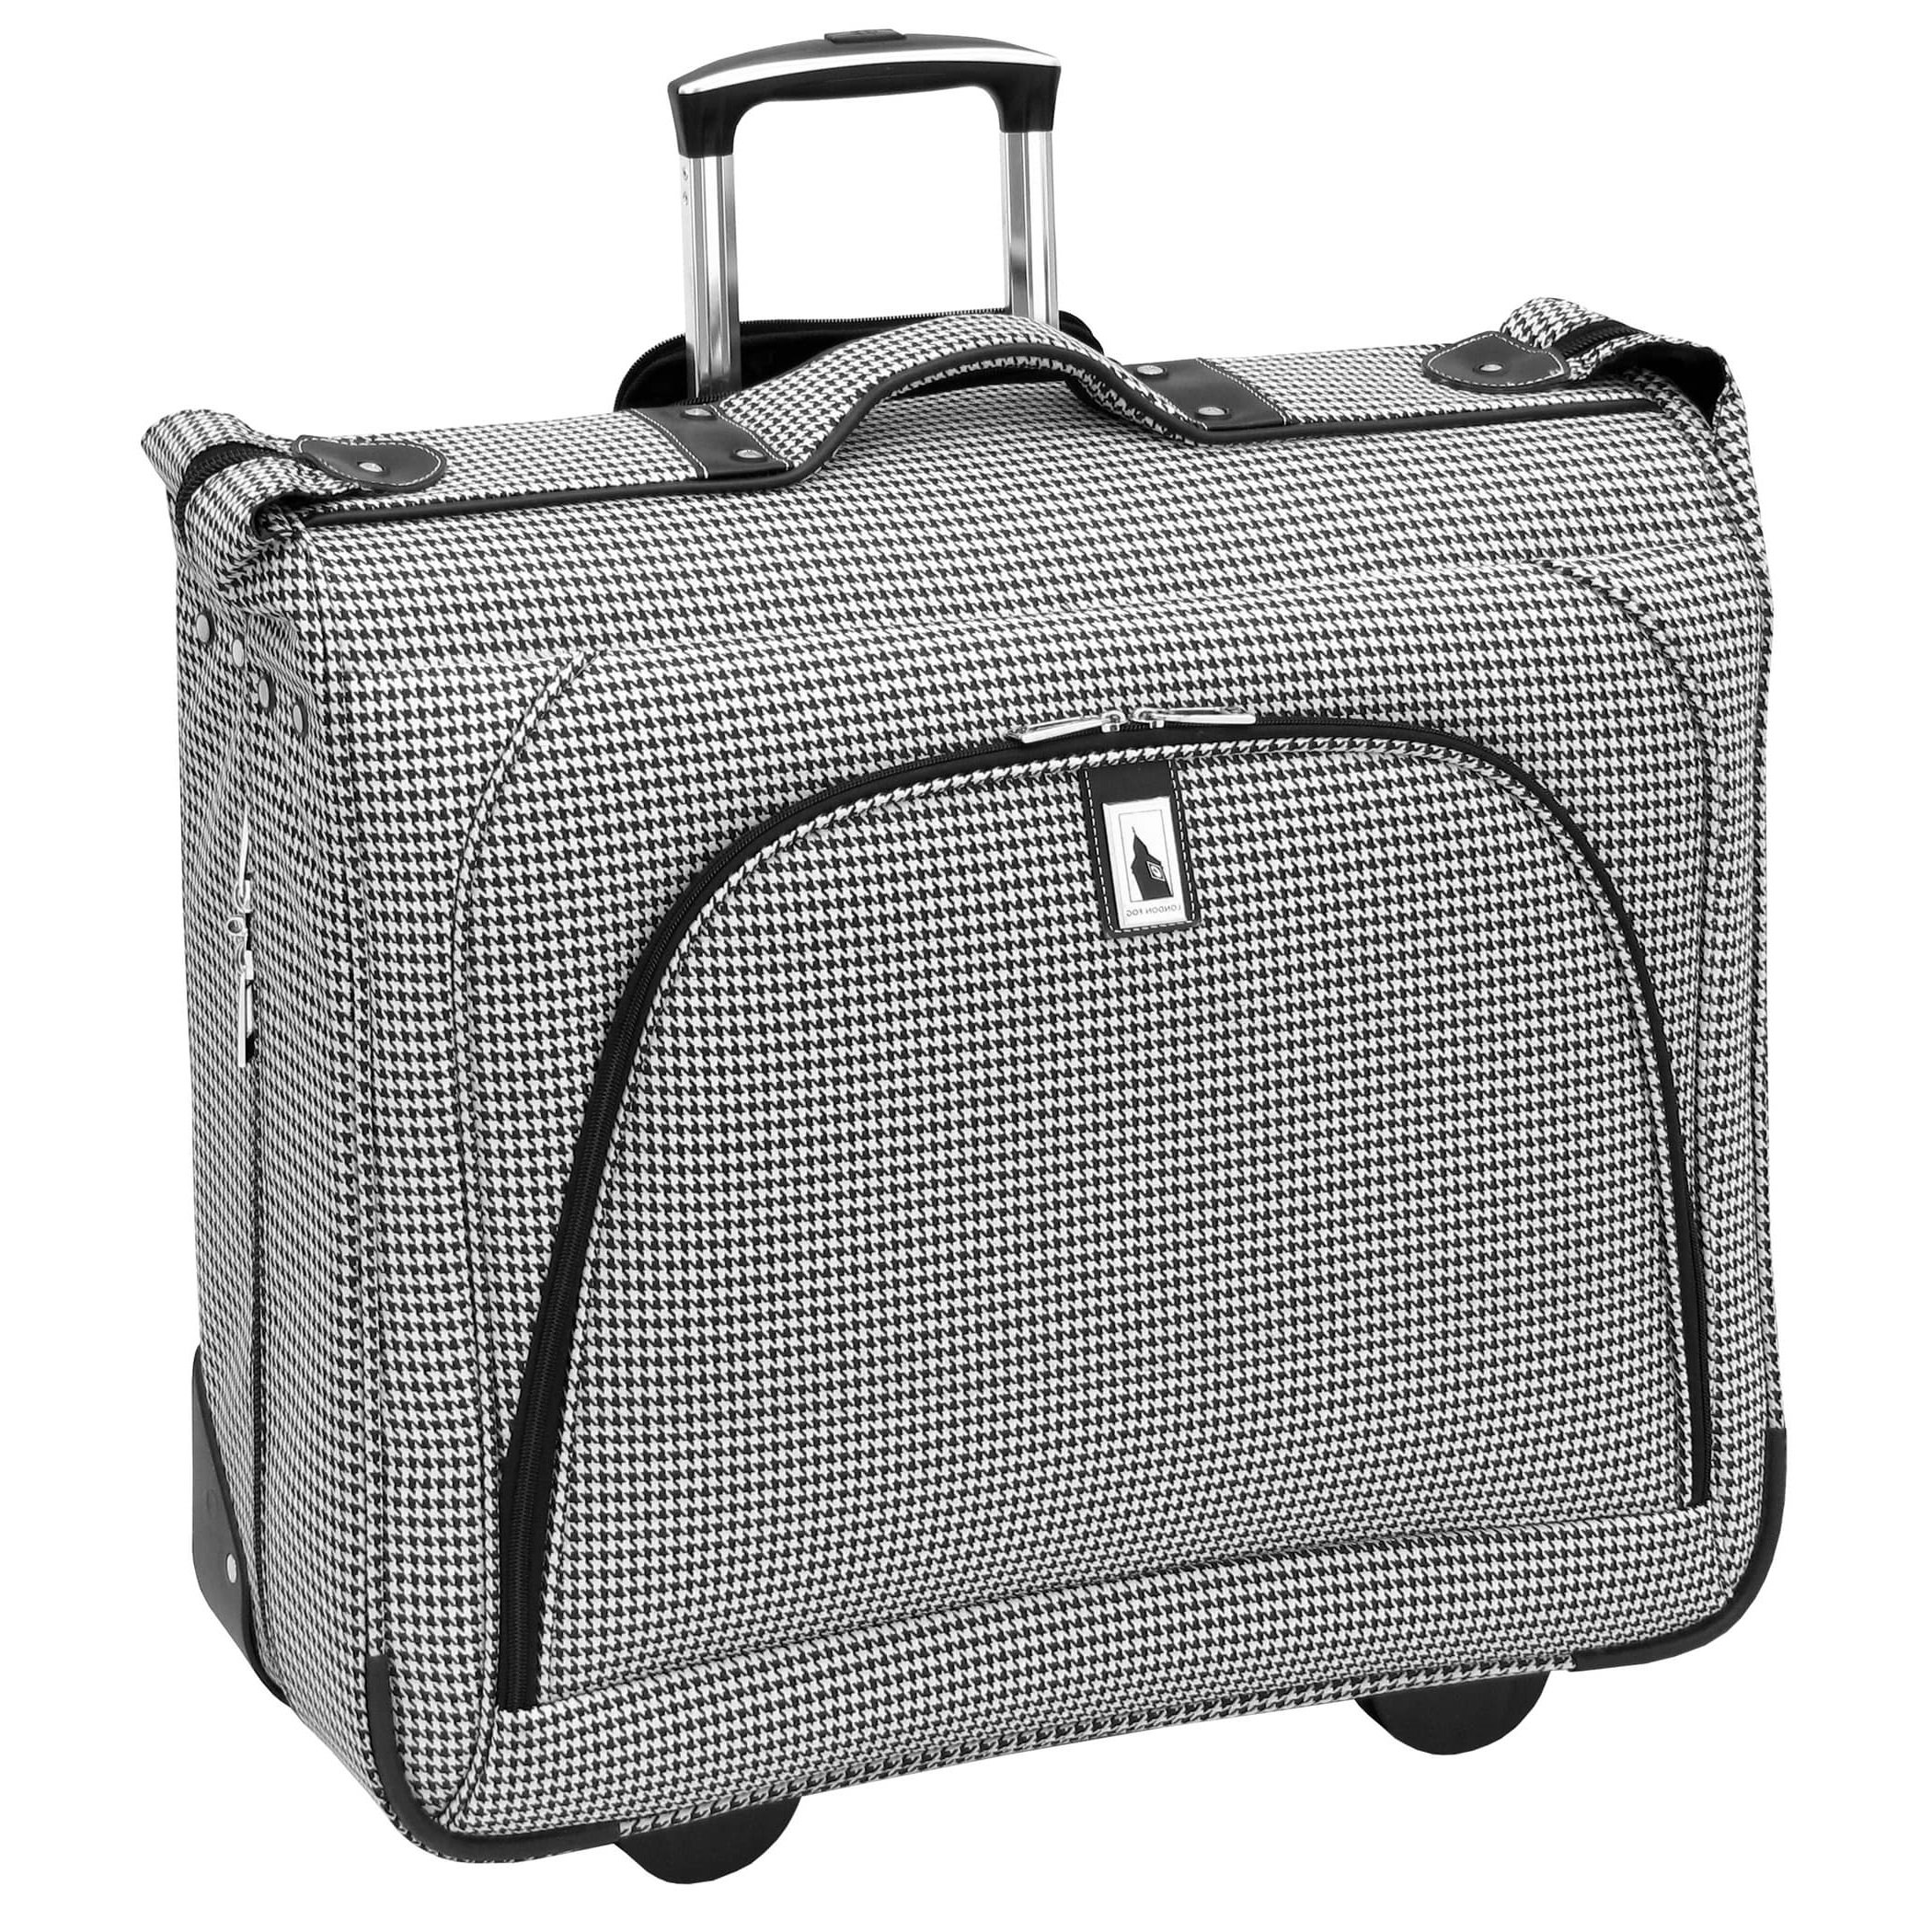 Exotic Hounds Tooth Motif Spinner Lightweight Expandable Carry On Luggage Suitcase, Soft Geometric Tribal Ikat Theme, Softsided, Fashion, Multi Compartment, Garment Travel Case, White, Black, Size 44''